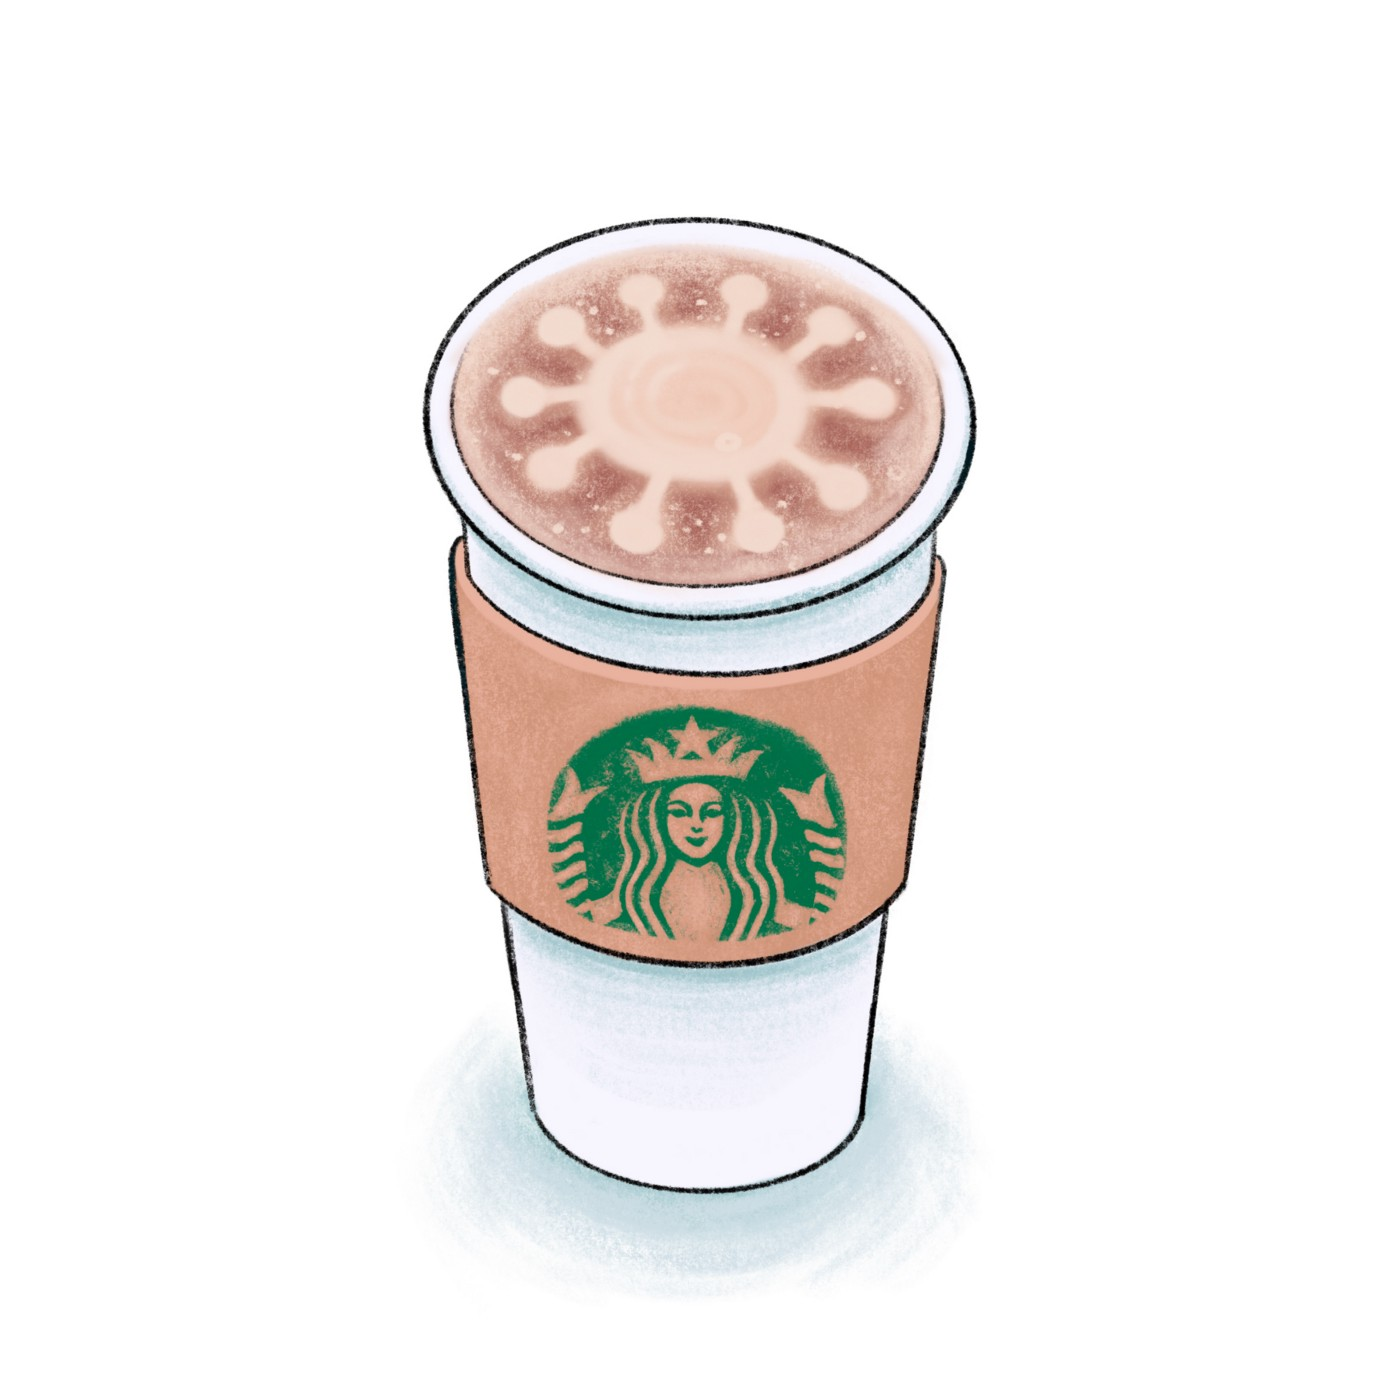 A graphic of a Starbucks venti to-go cup with latte foam art in the shape of the coronavirus.